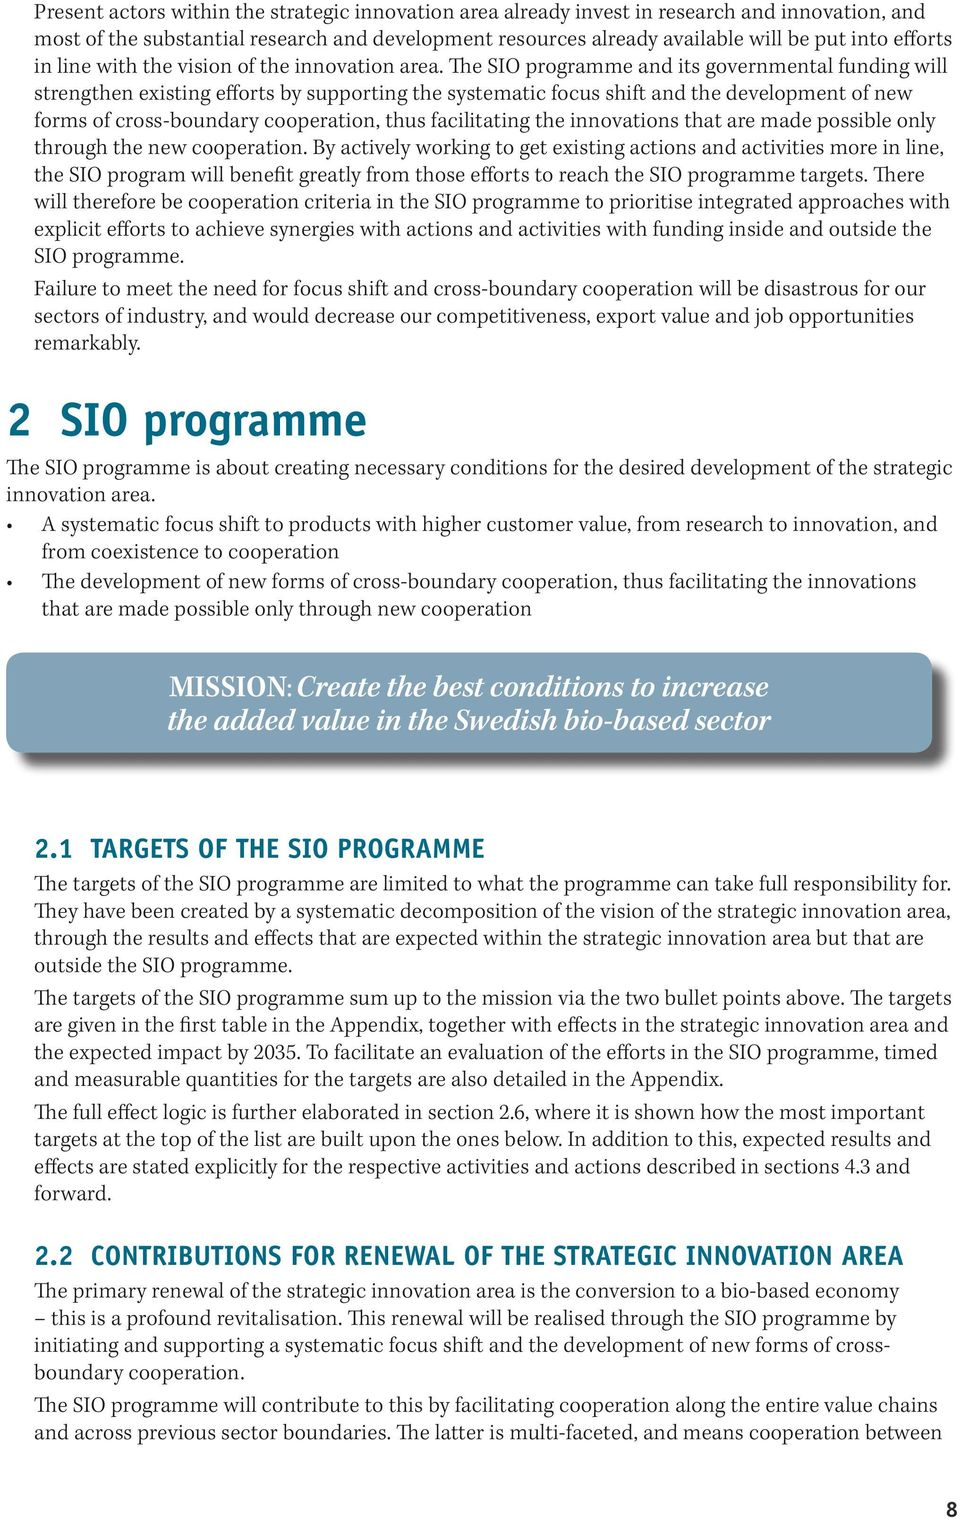 The SIO programme and its governmental funding will strengthen existing efforts by supporting the systematic focus shift and the development of new forms of cross-boundary cooperation, thus